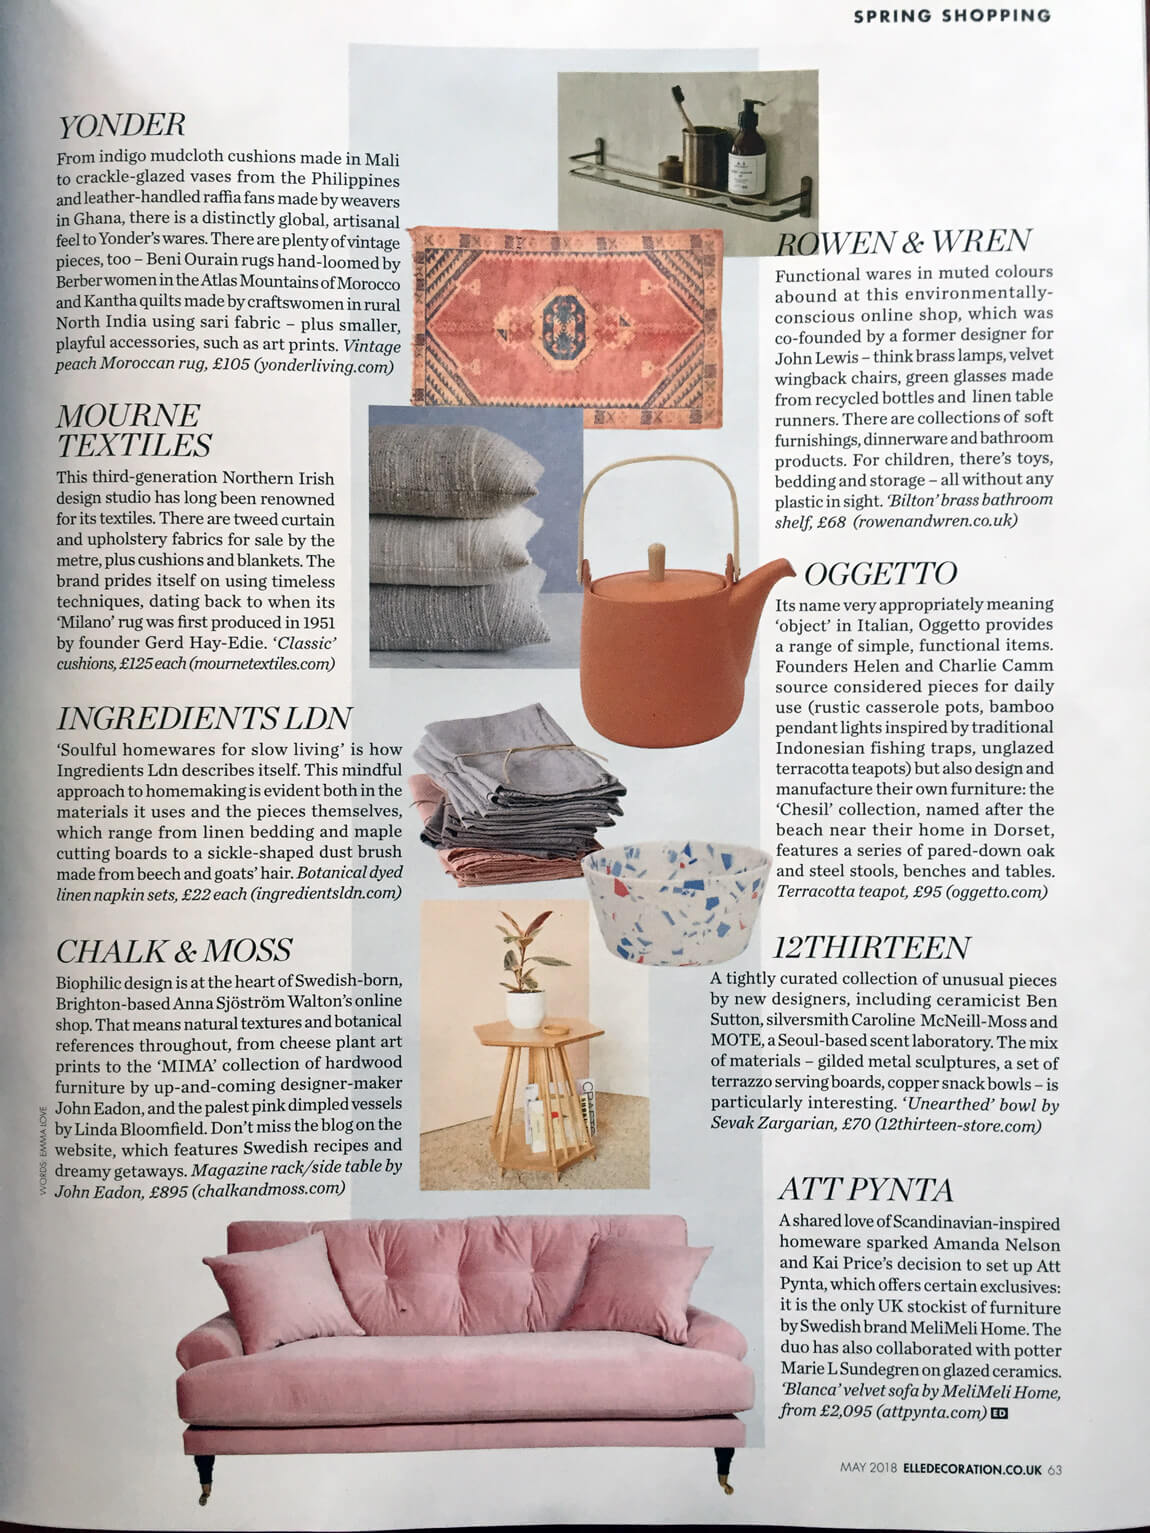 UK's best homeware websites - Elle Decoration features Chalk